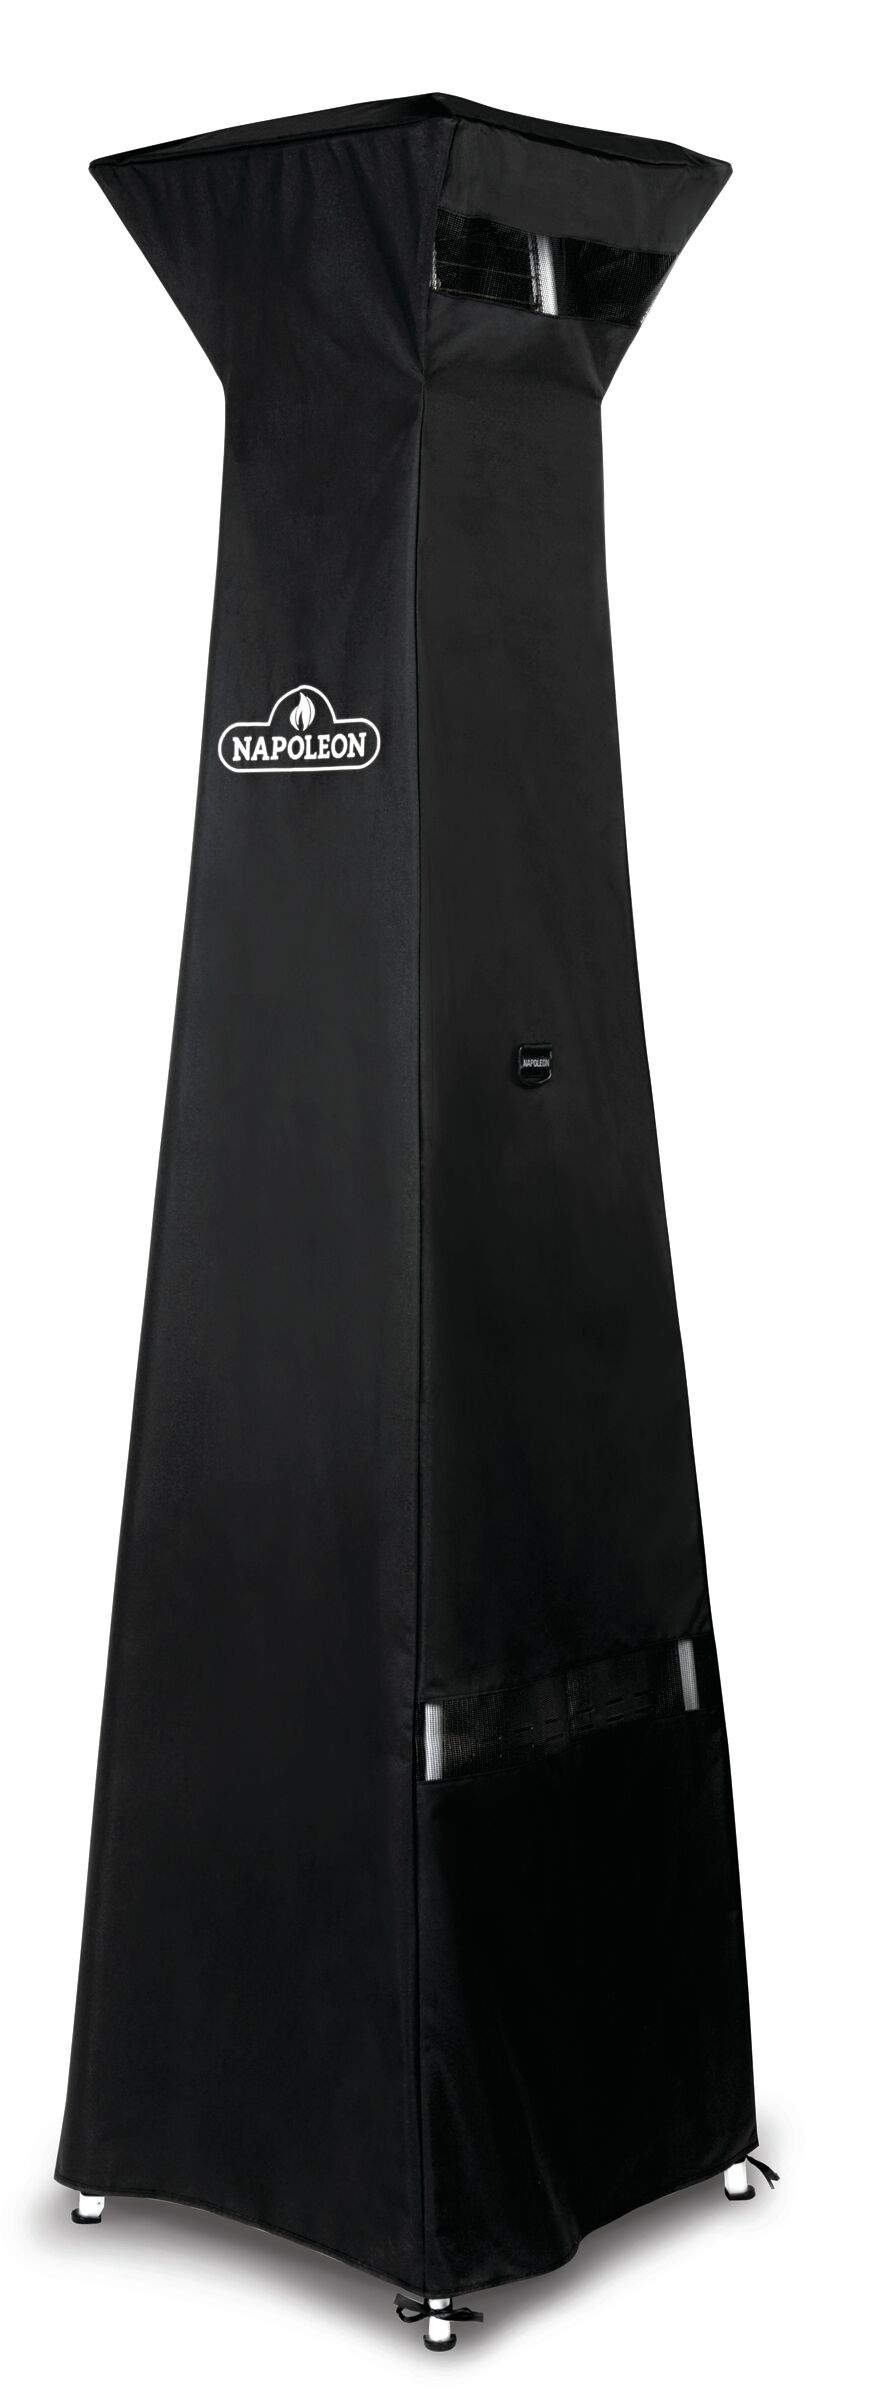 SkyFire Bellagio Patio Heater Cover